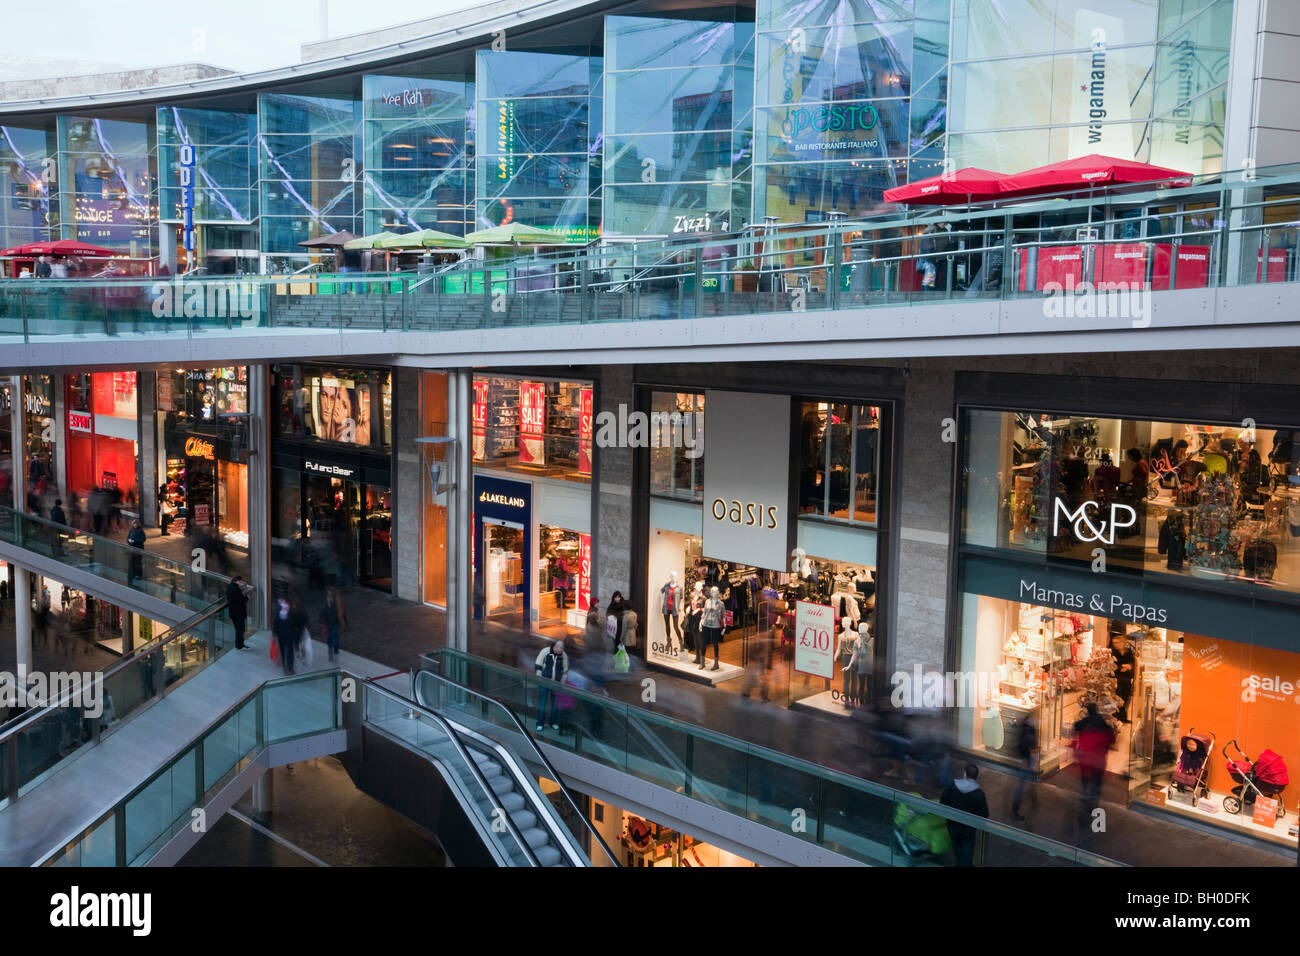 Liverpool, Merseyside, England, UK, Europe. Shops and cafes in Liverpool One shopping centre - Stock Image